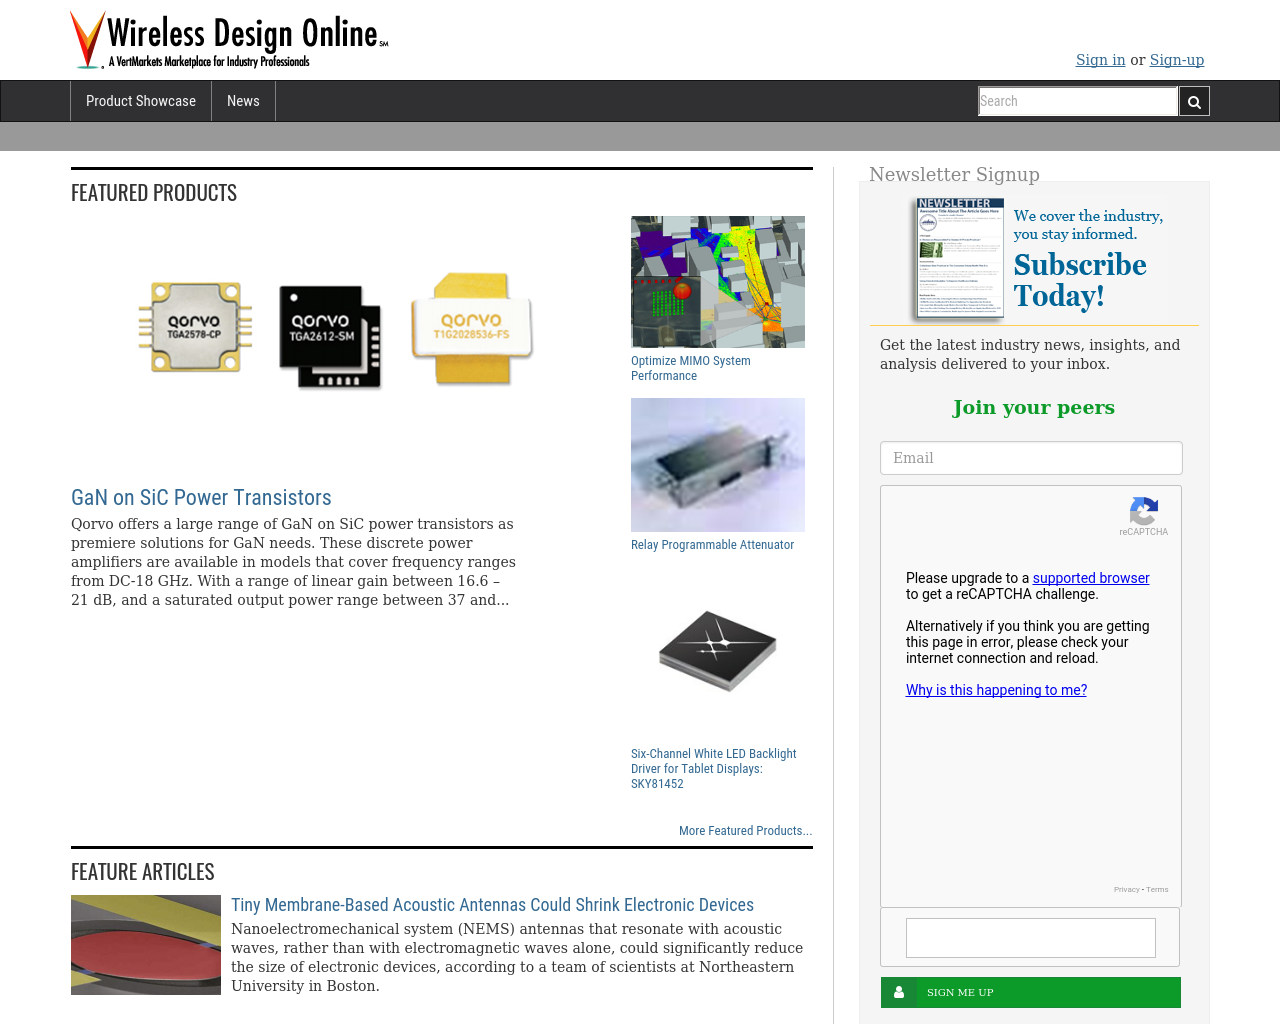 Wireless-design-online-Advertising-Reviews-Pricing